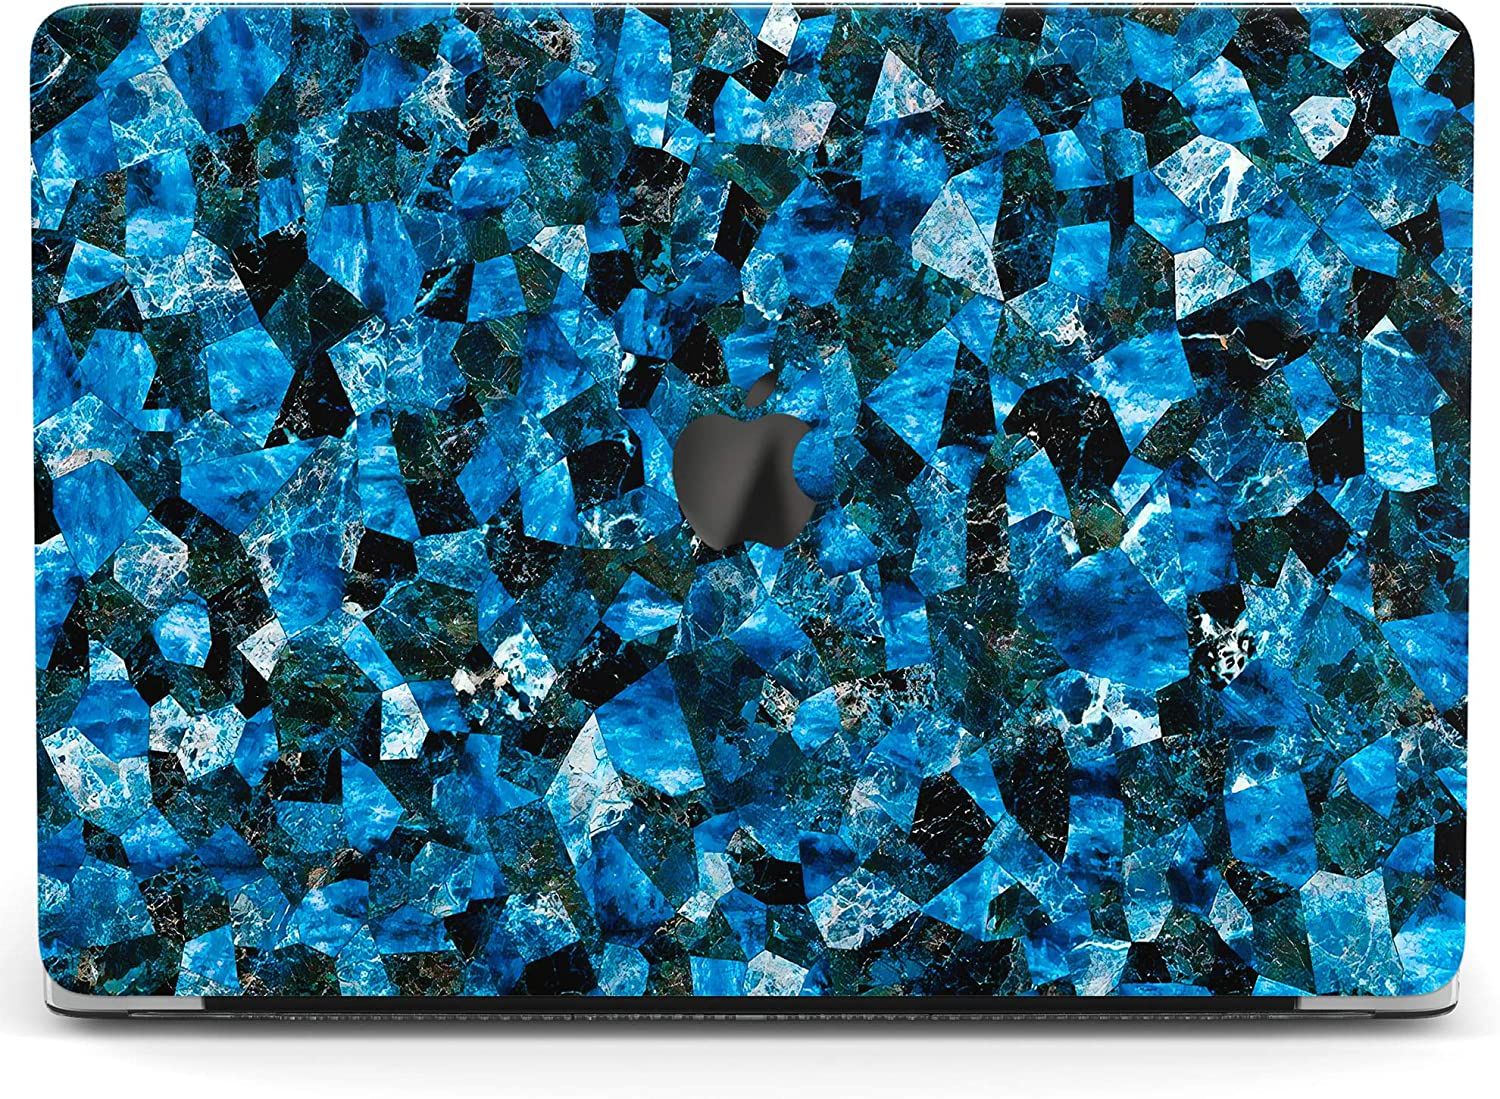 Wonder Wild Case for MacBook Air 13 inch Pro 15 2019 2018 Retina 12 11 Apple Hard Mac Protective Cover Touch Bar 2017 2016 2020 Plastic Laptop Print Blue Crystal Amethyst Mineral Geological Quartz